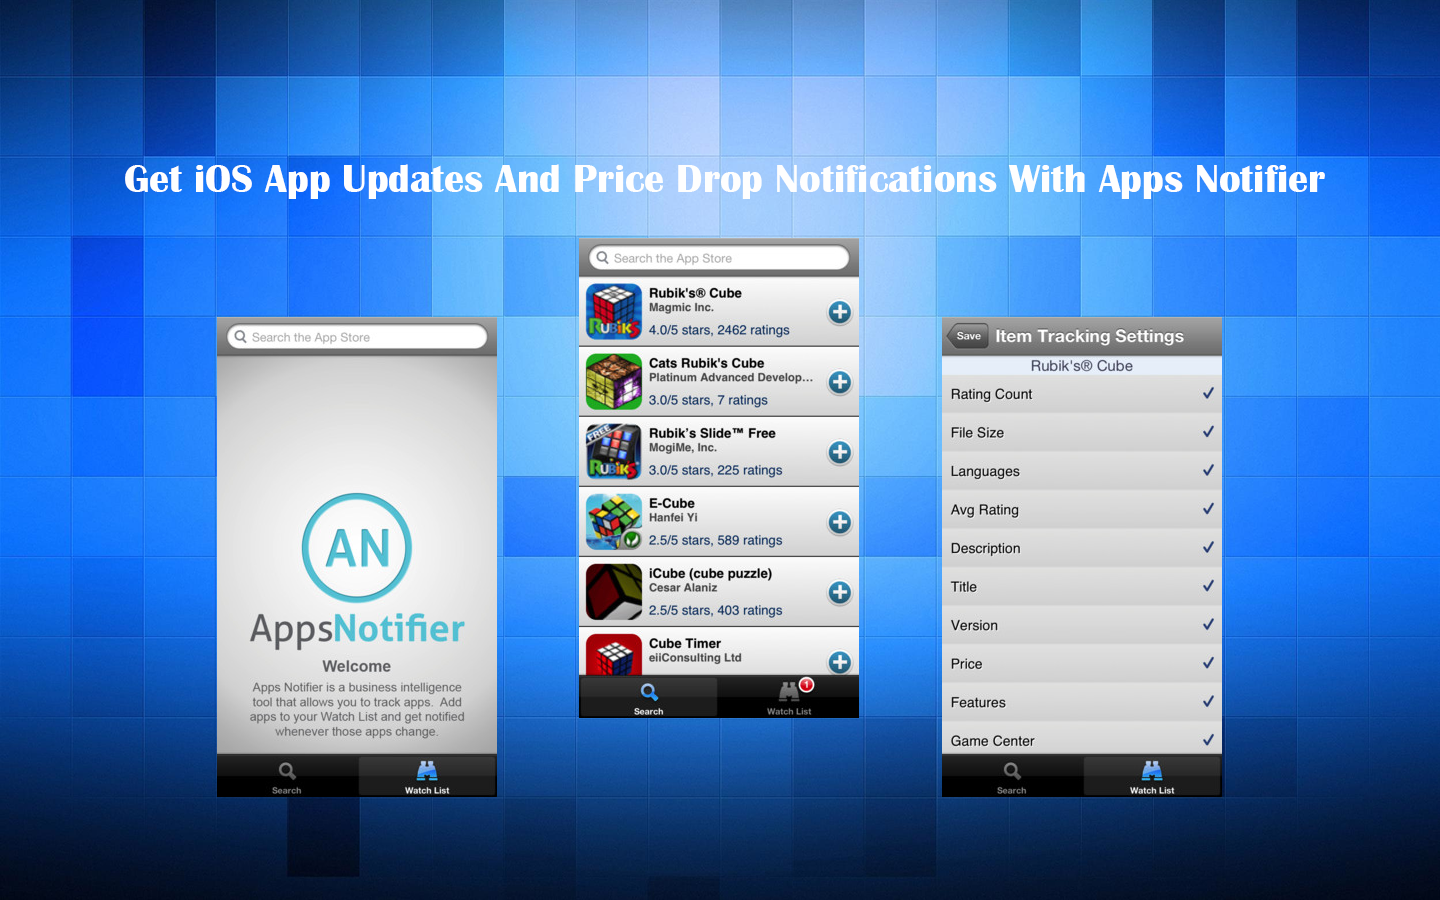 Get iOS App Updates And Price Drop Notifications With Apps Notifier thetechhacker